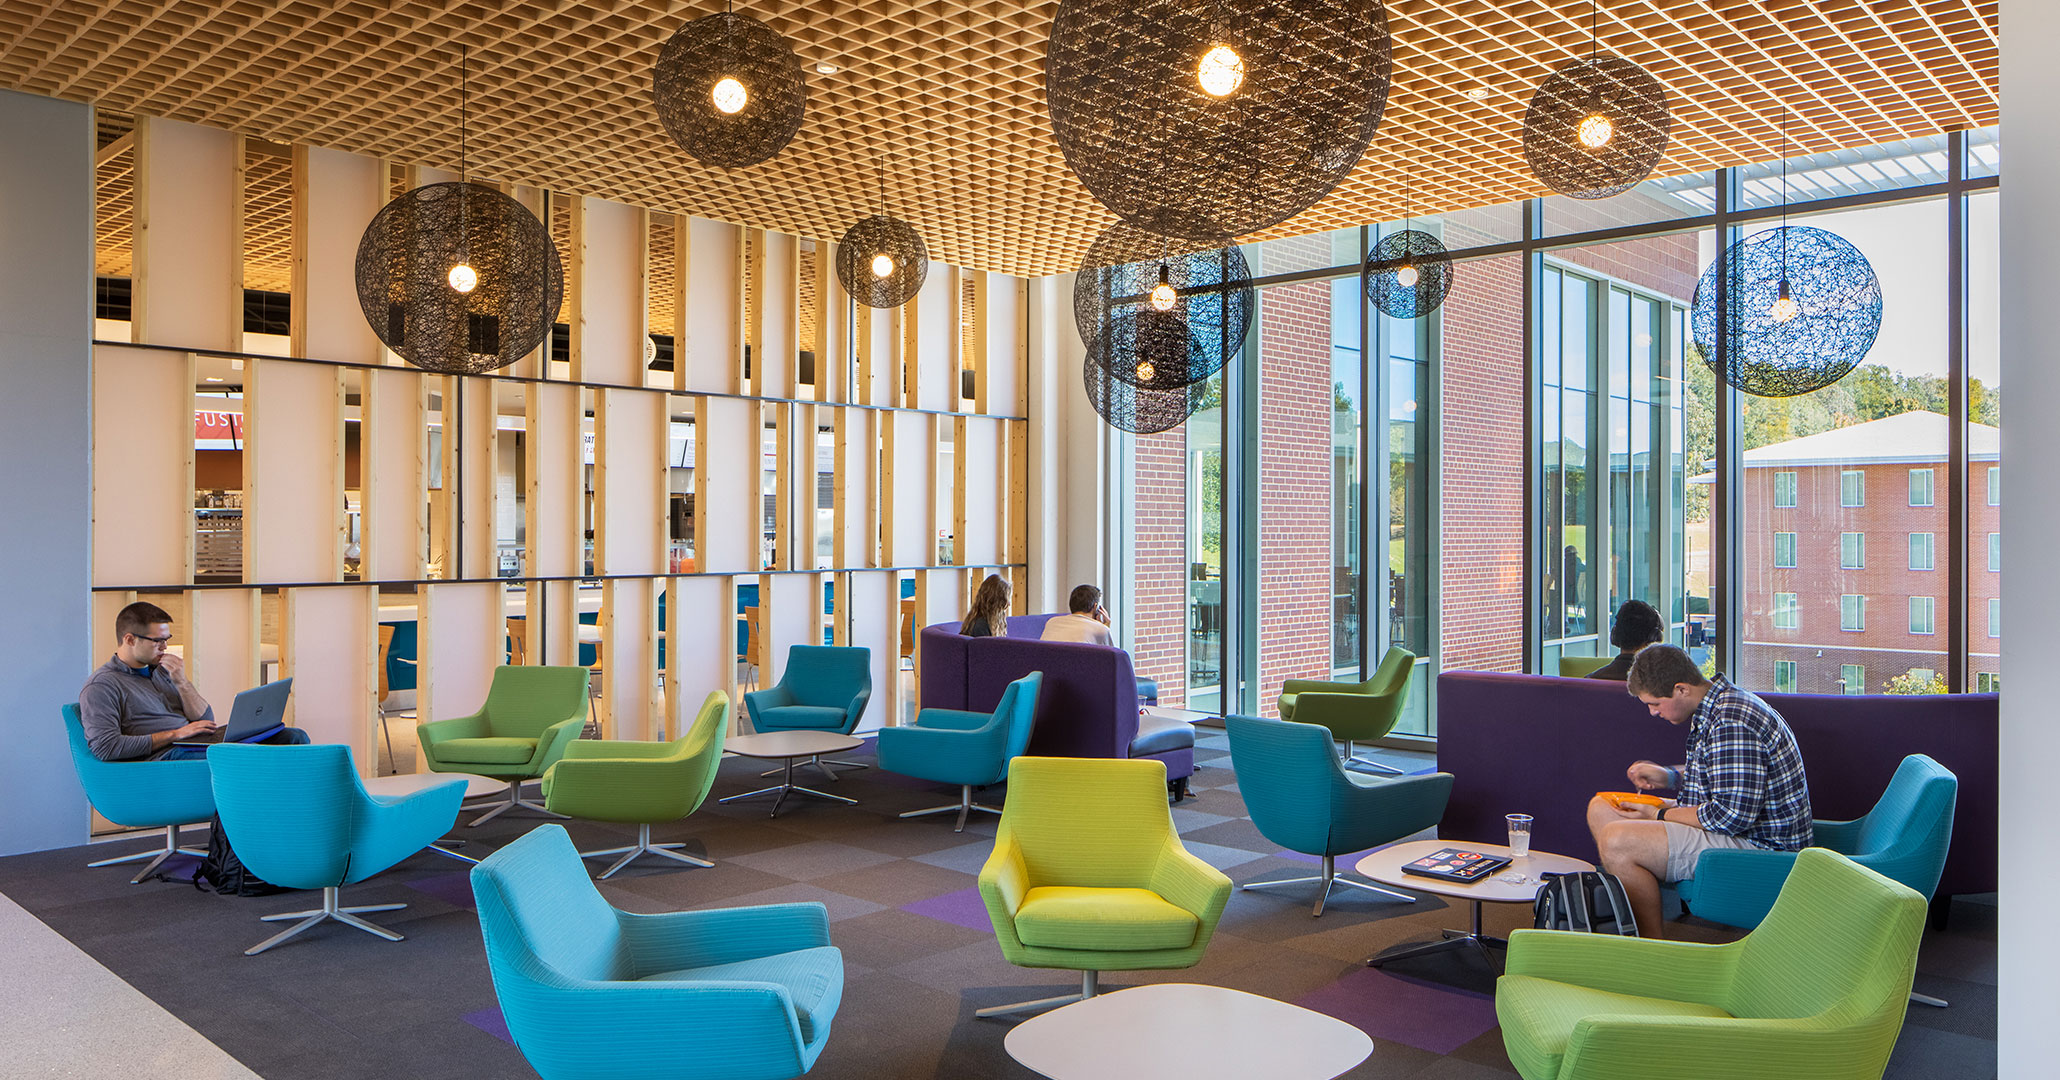 Clemson University worked with Boudreaux architects to provide students with modern living and study areas at Douthit Hills Student Hub.